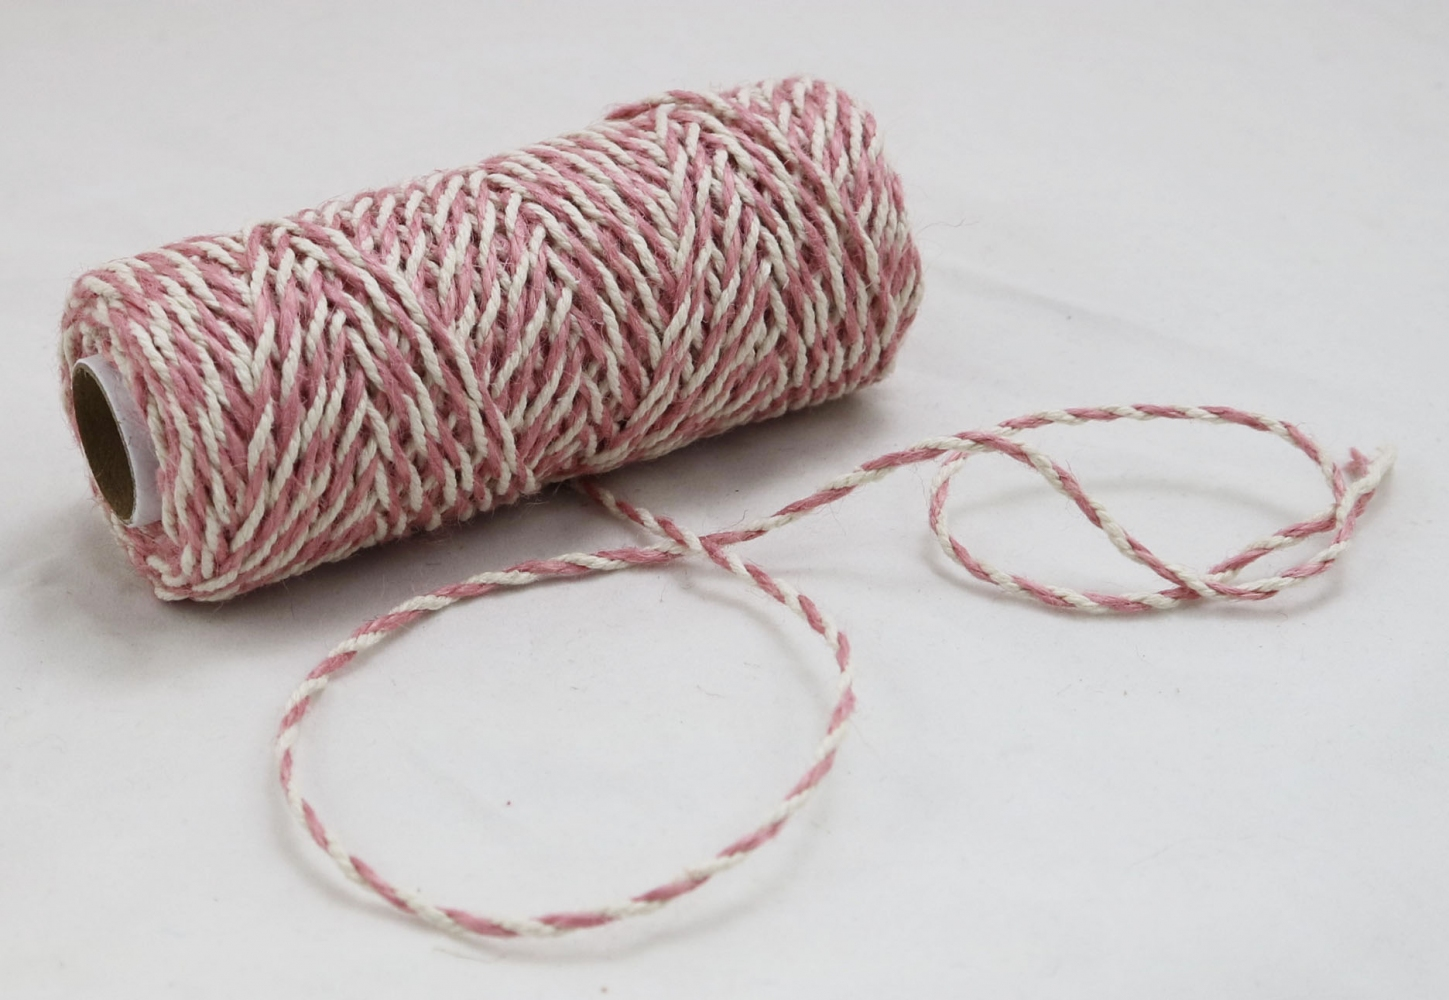 Jute+cotton cord, sweet powder-white color, 50 meters - 2